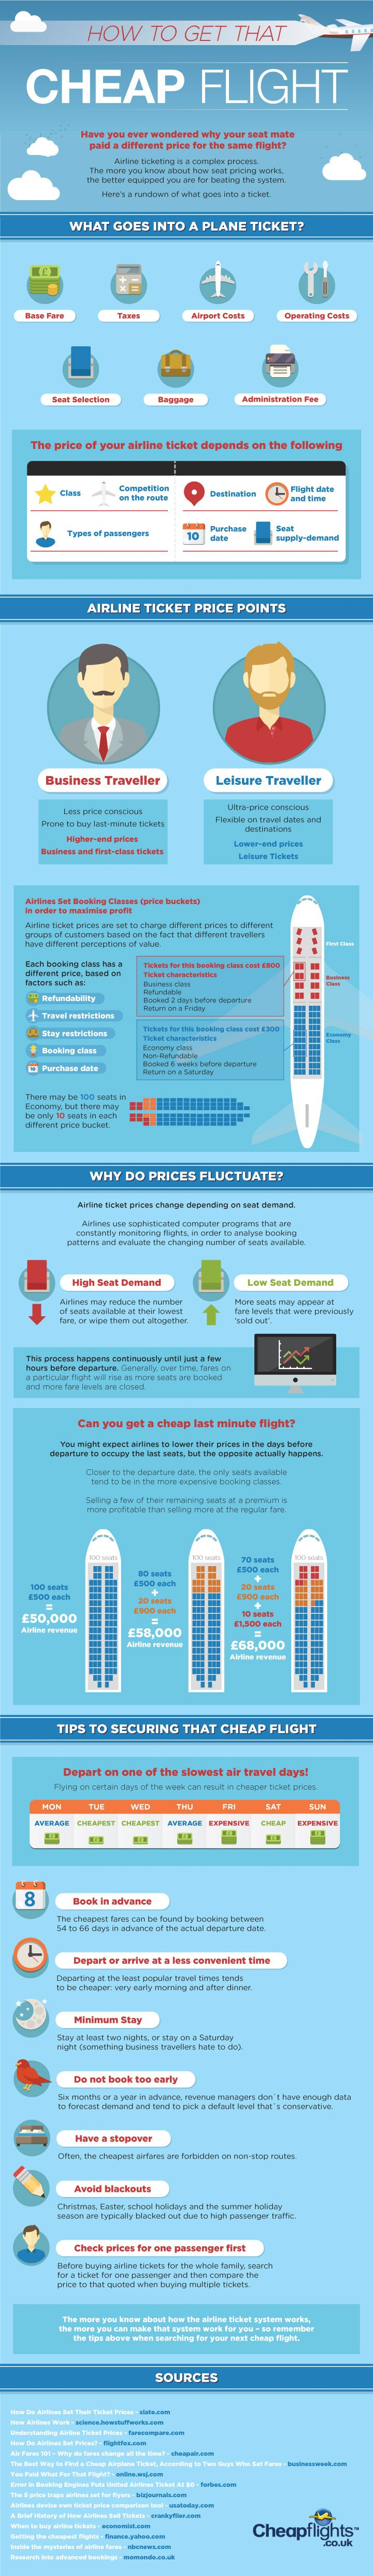 How to Get a Cheap Flight - Understanding Airline Ticket Pricing. Infographic